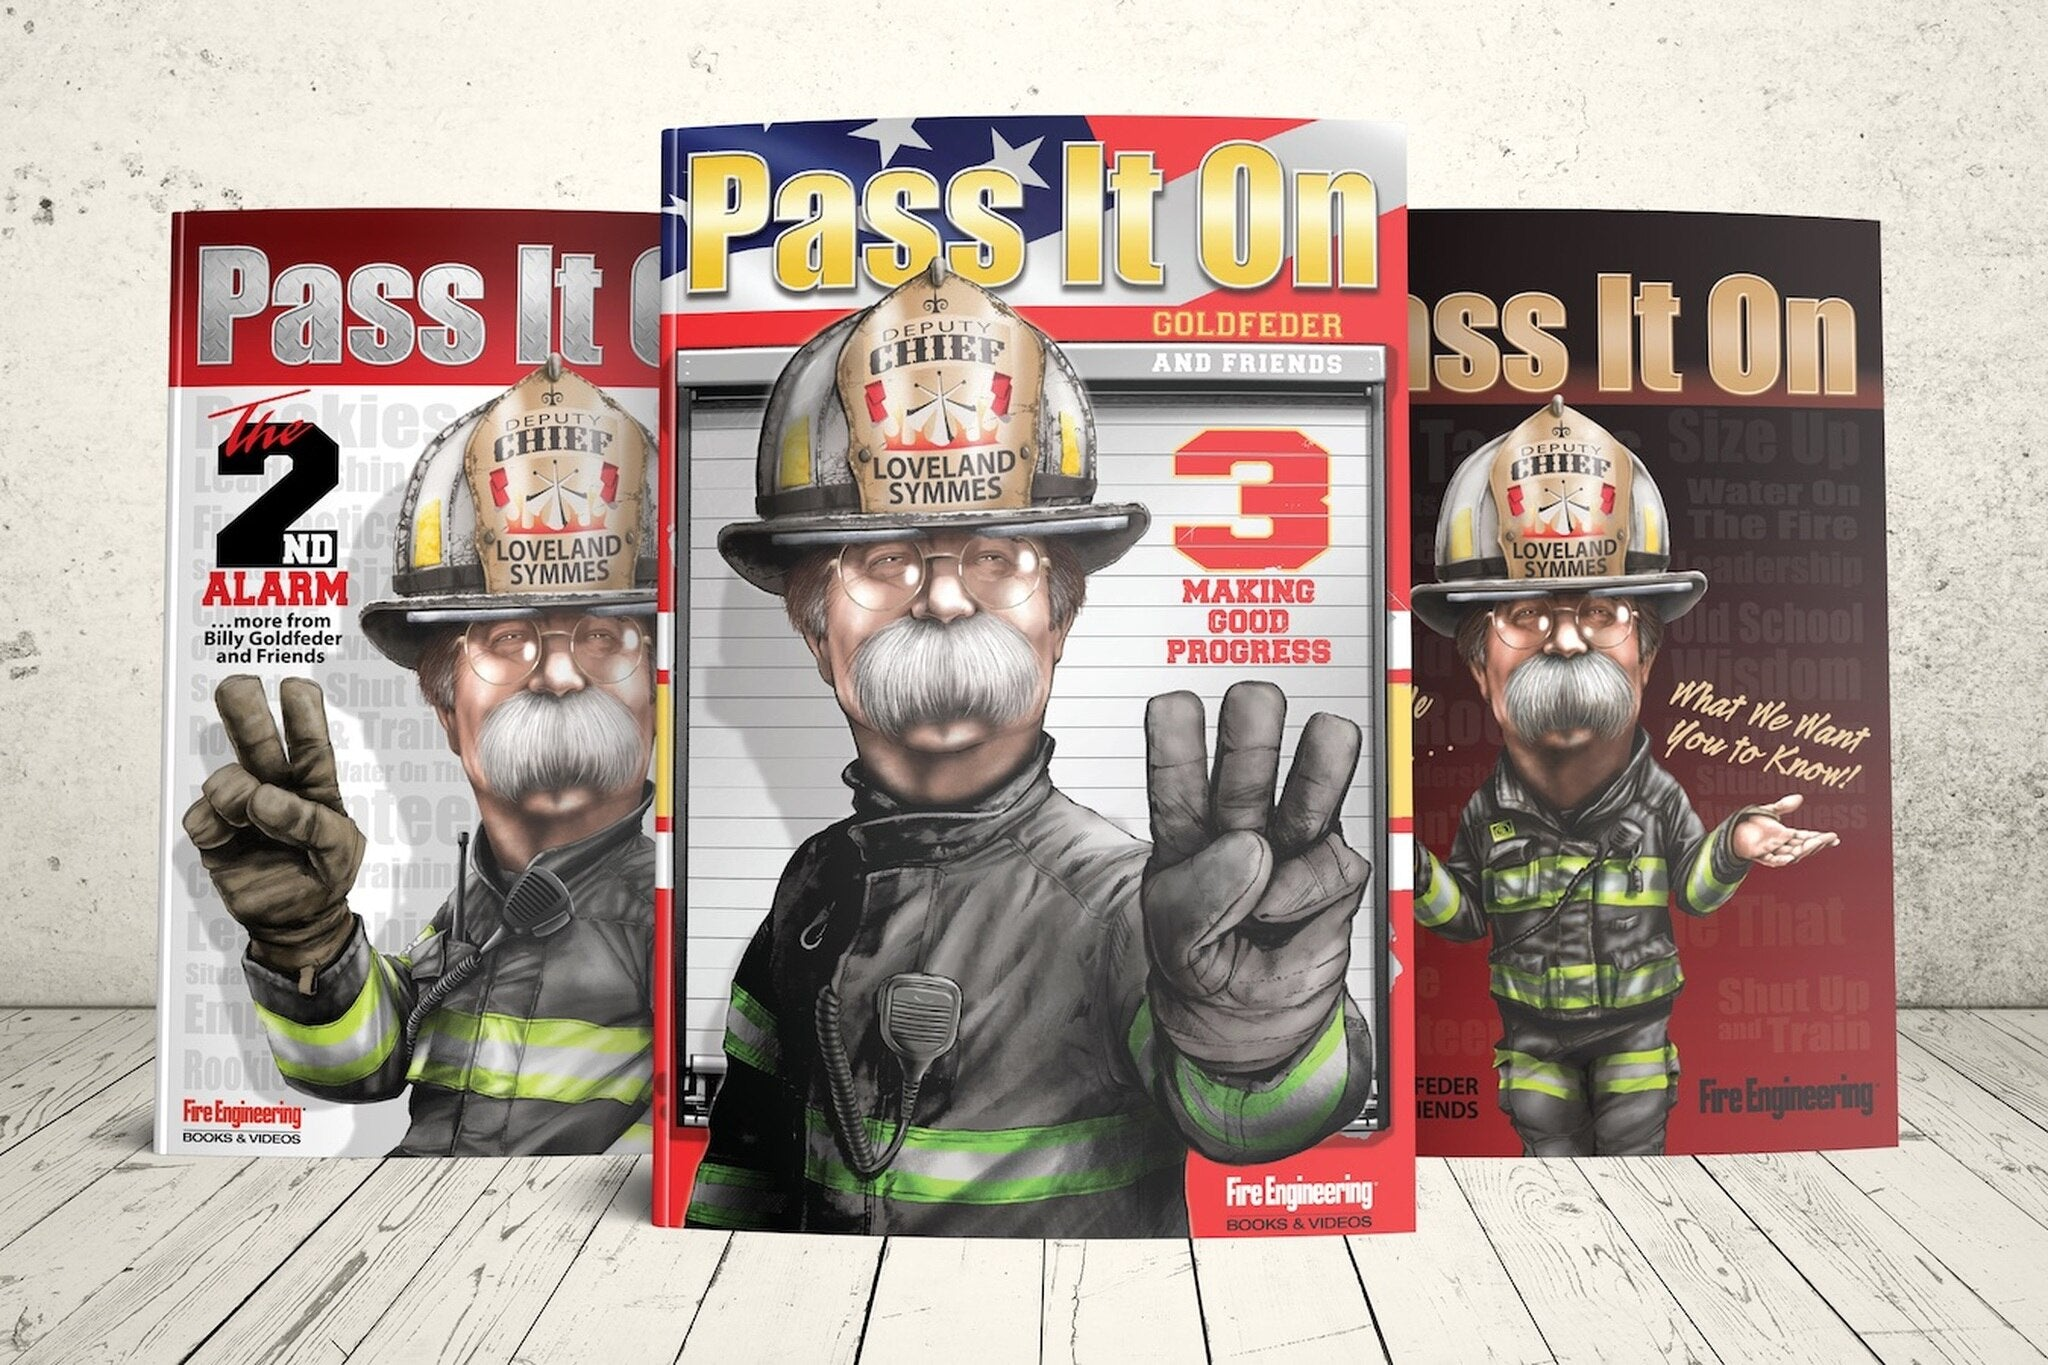 Fire Engineering Books: Pass It On Bundle